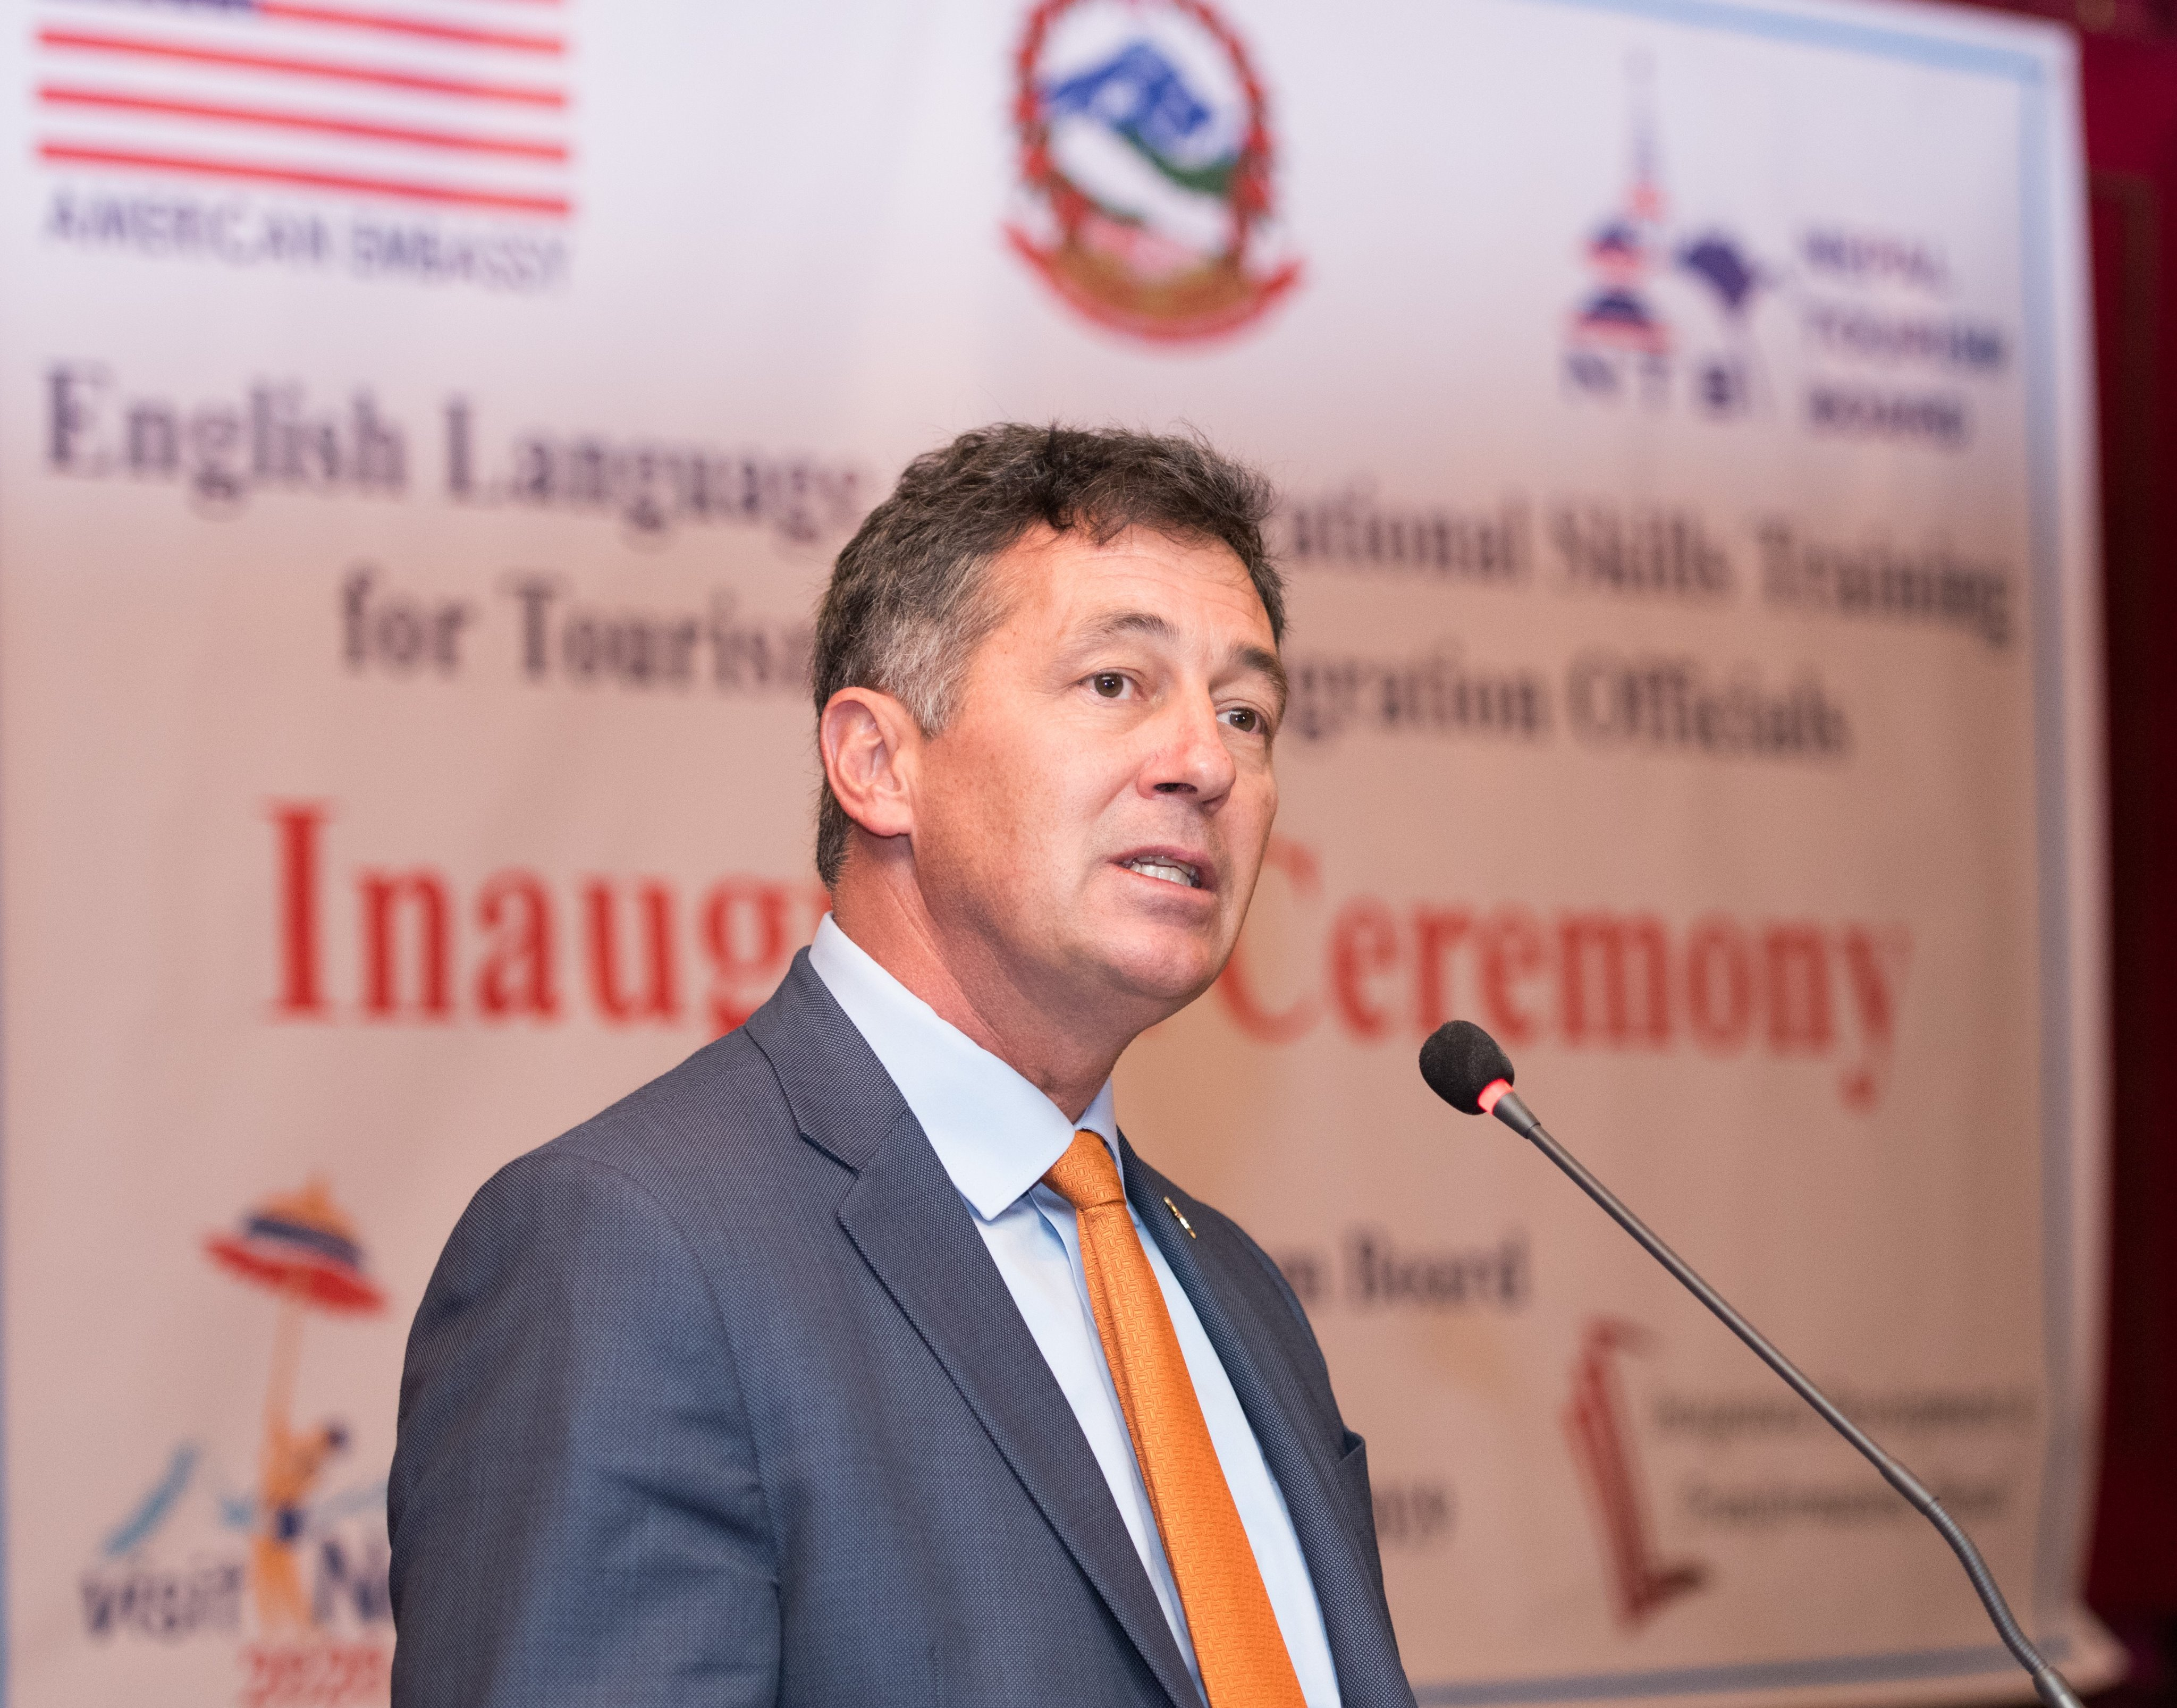 File - This undated image shows United States Ambassador to Nepal Randy Berry. Photo: THT